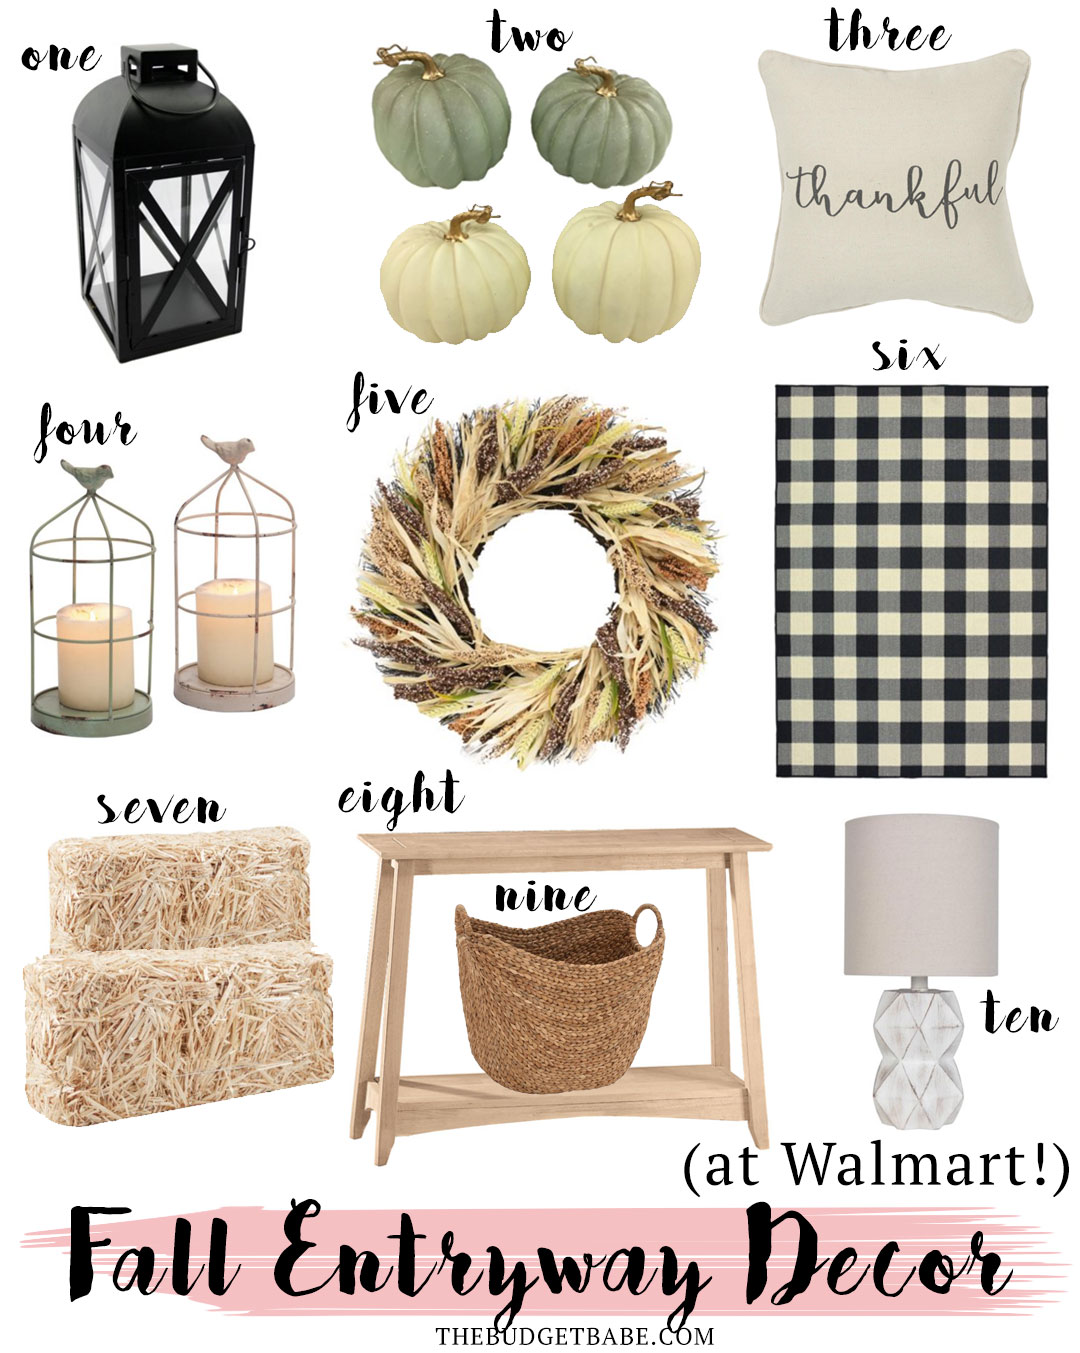 Fall entryway decor on a budget with Walmart